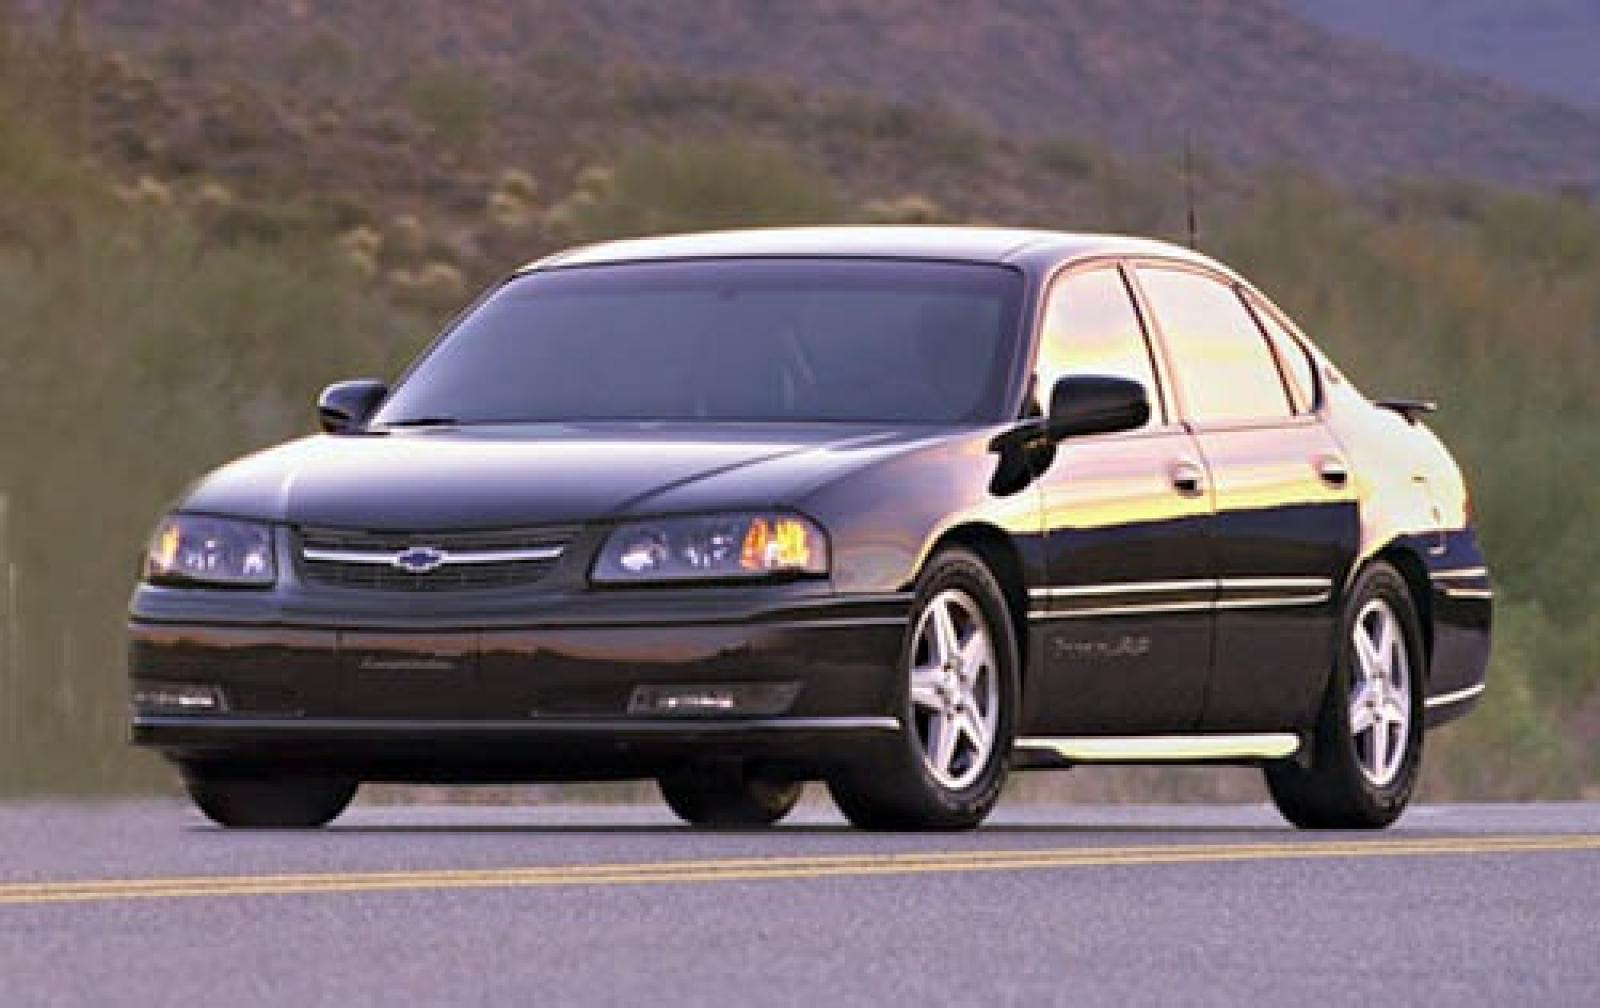 2005 chevrolet impala information and photos zombiedrive. Black Bedroom Furniture Sets. Home Design Ideas